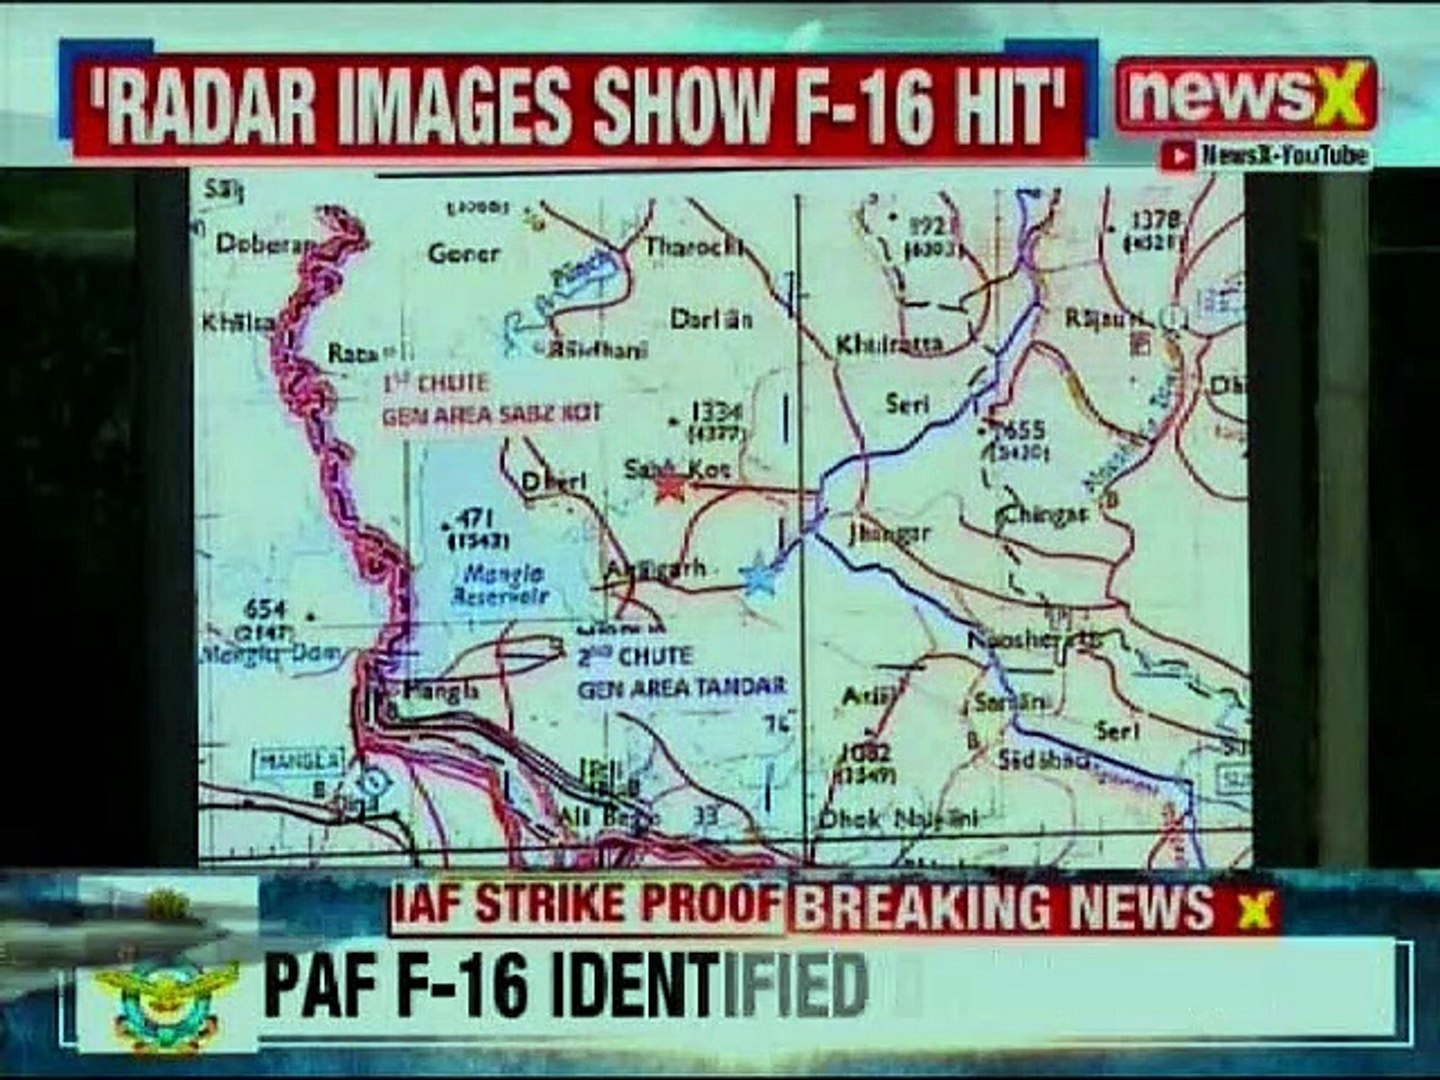 IAF shows Radar images of Pakistan's F-16; Indian Air Force Strike Proof